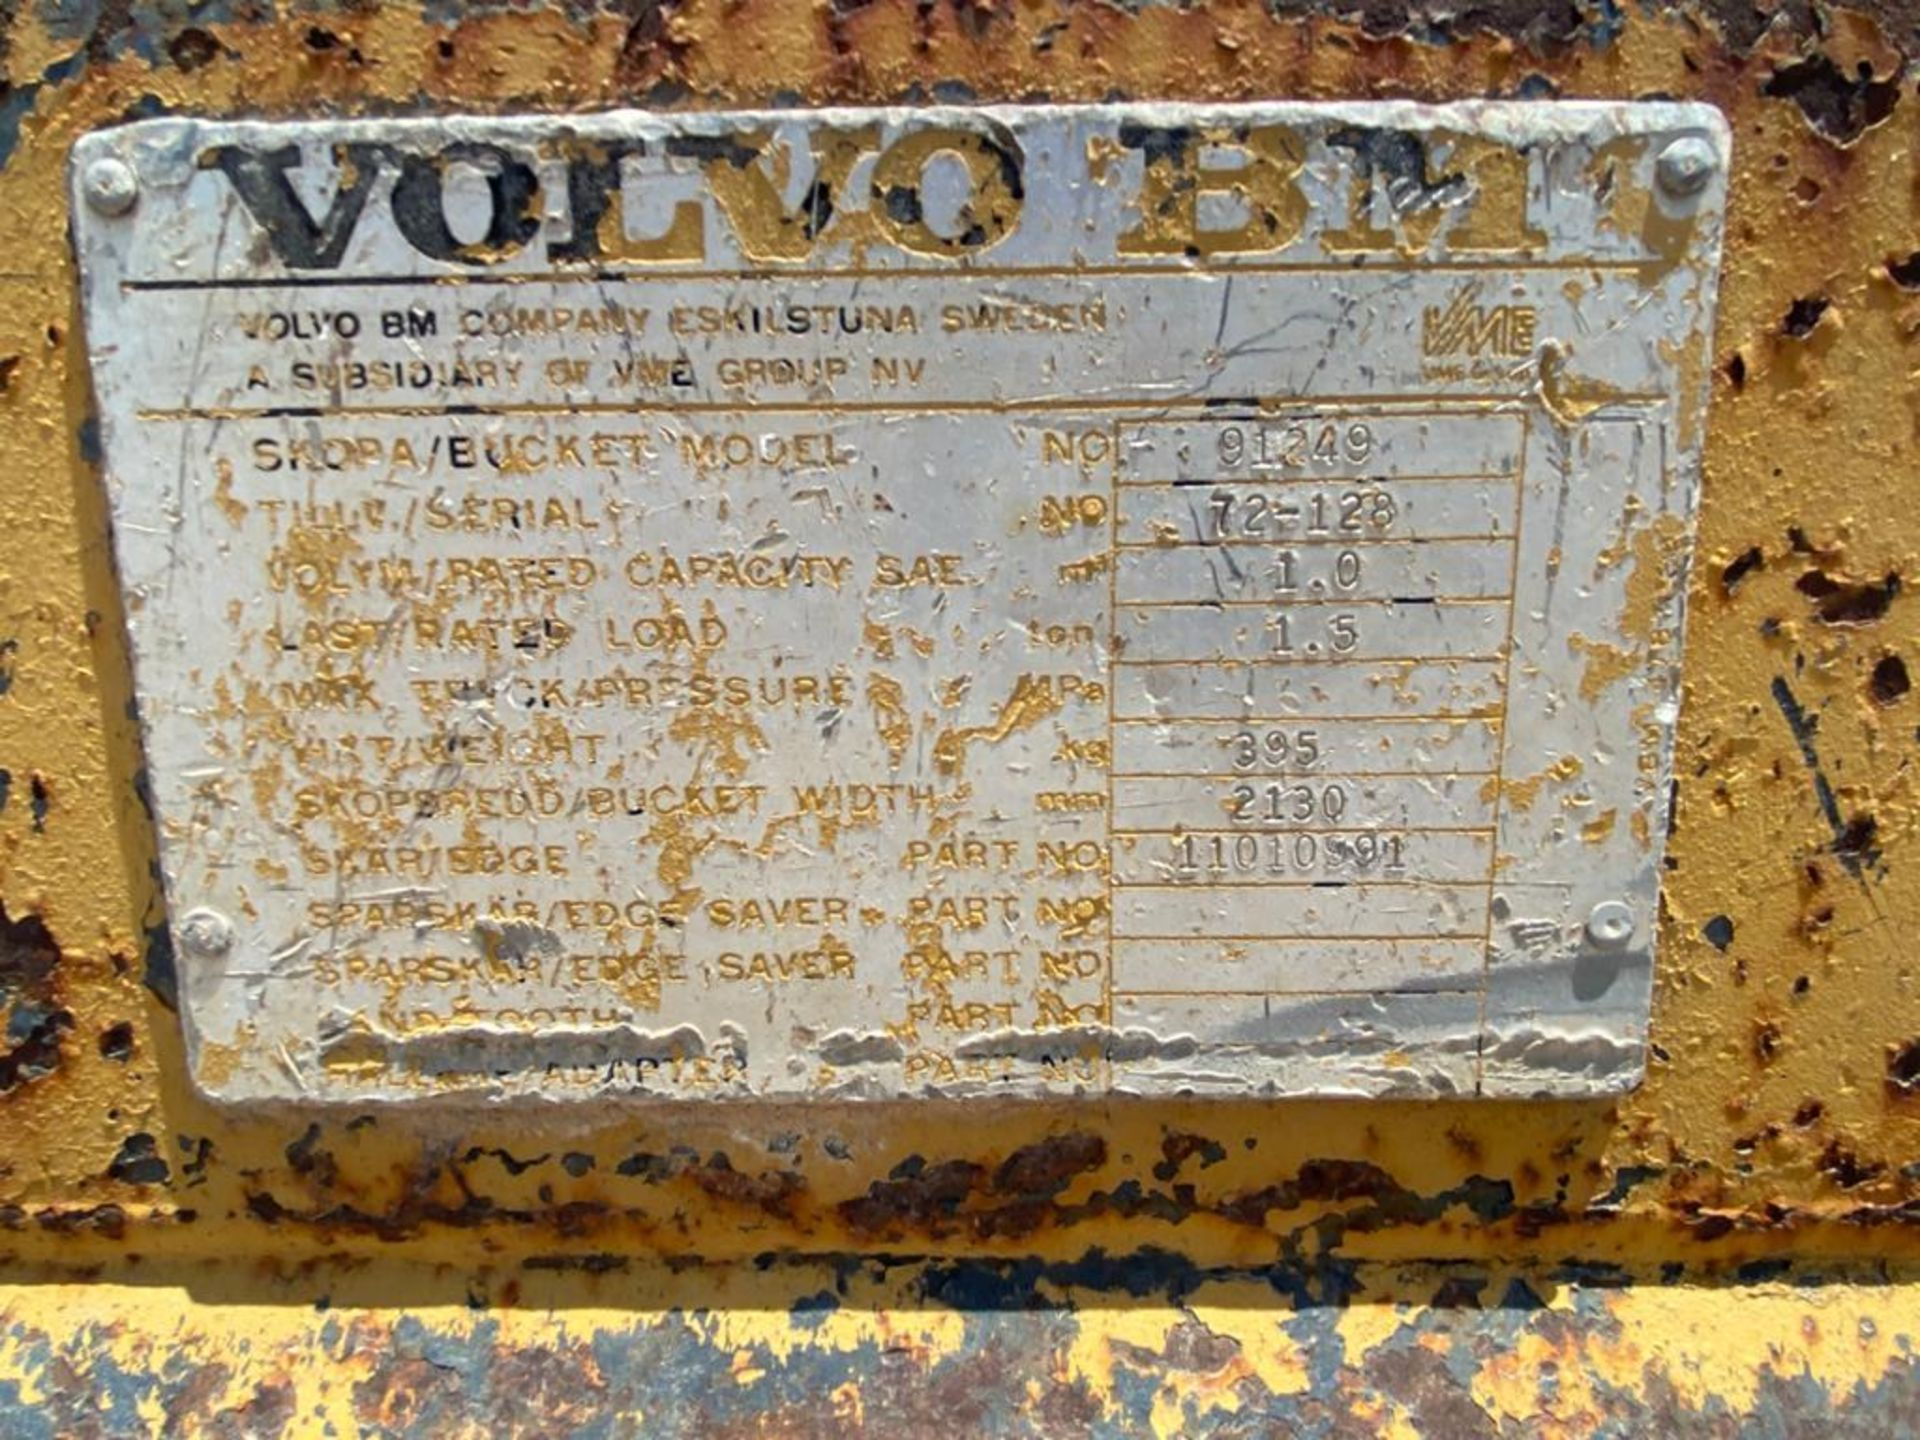 Volvo BM TYPE L 30 Michigan Front Loder, automatic transmission - Image 52 of 53